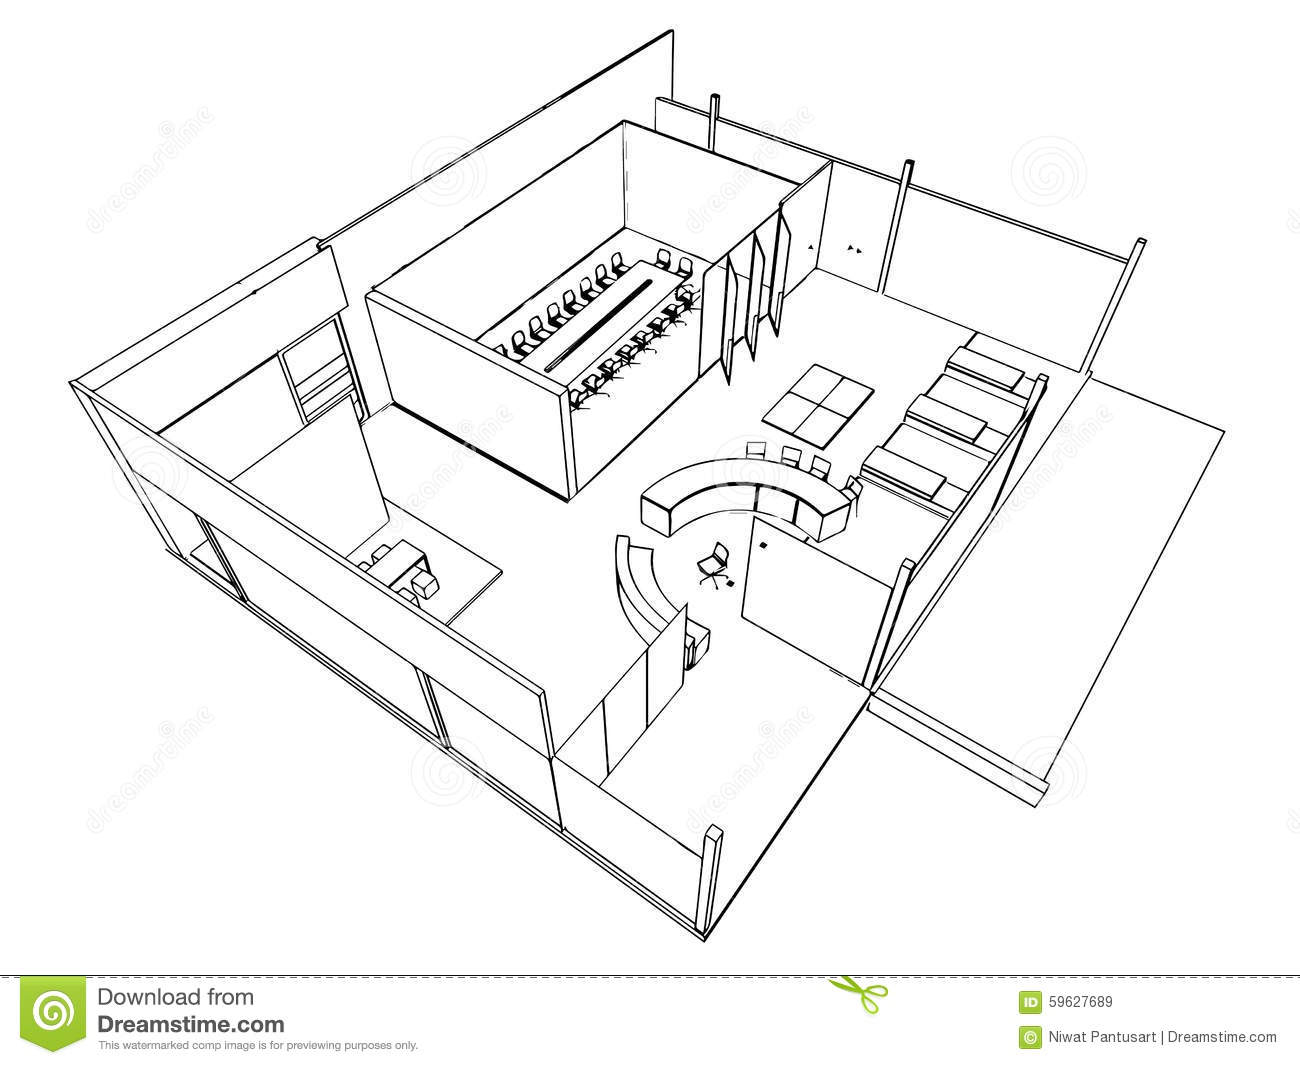 Outline Sketch Of A Interior Stock Vector - Image: 59627689